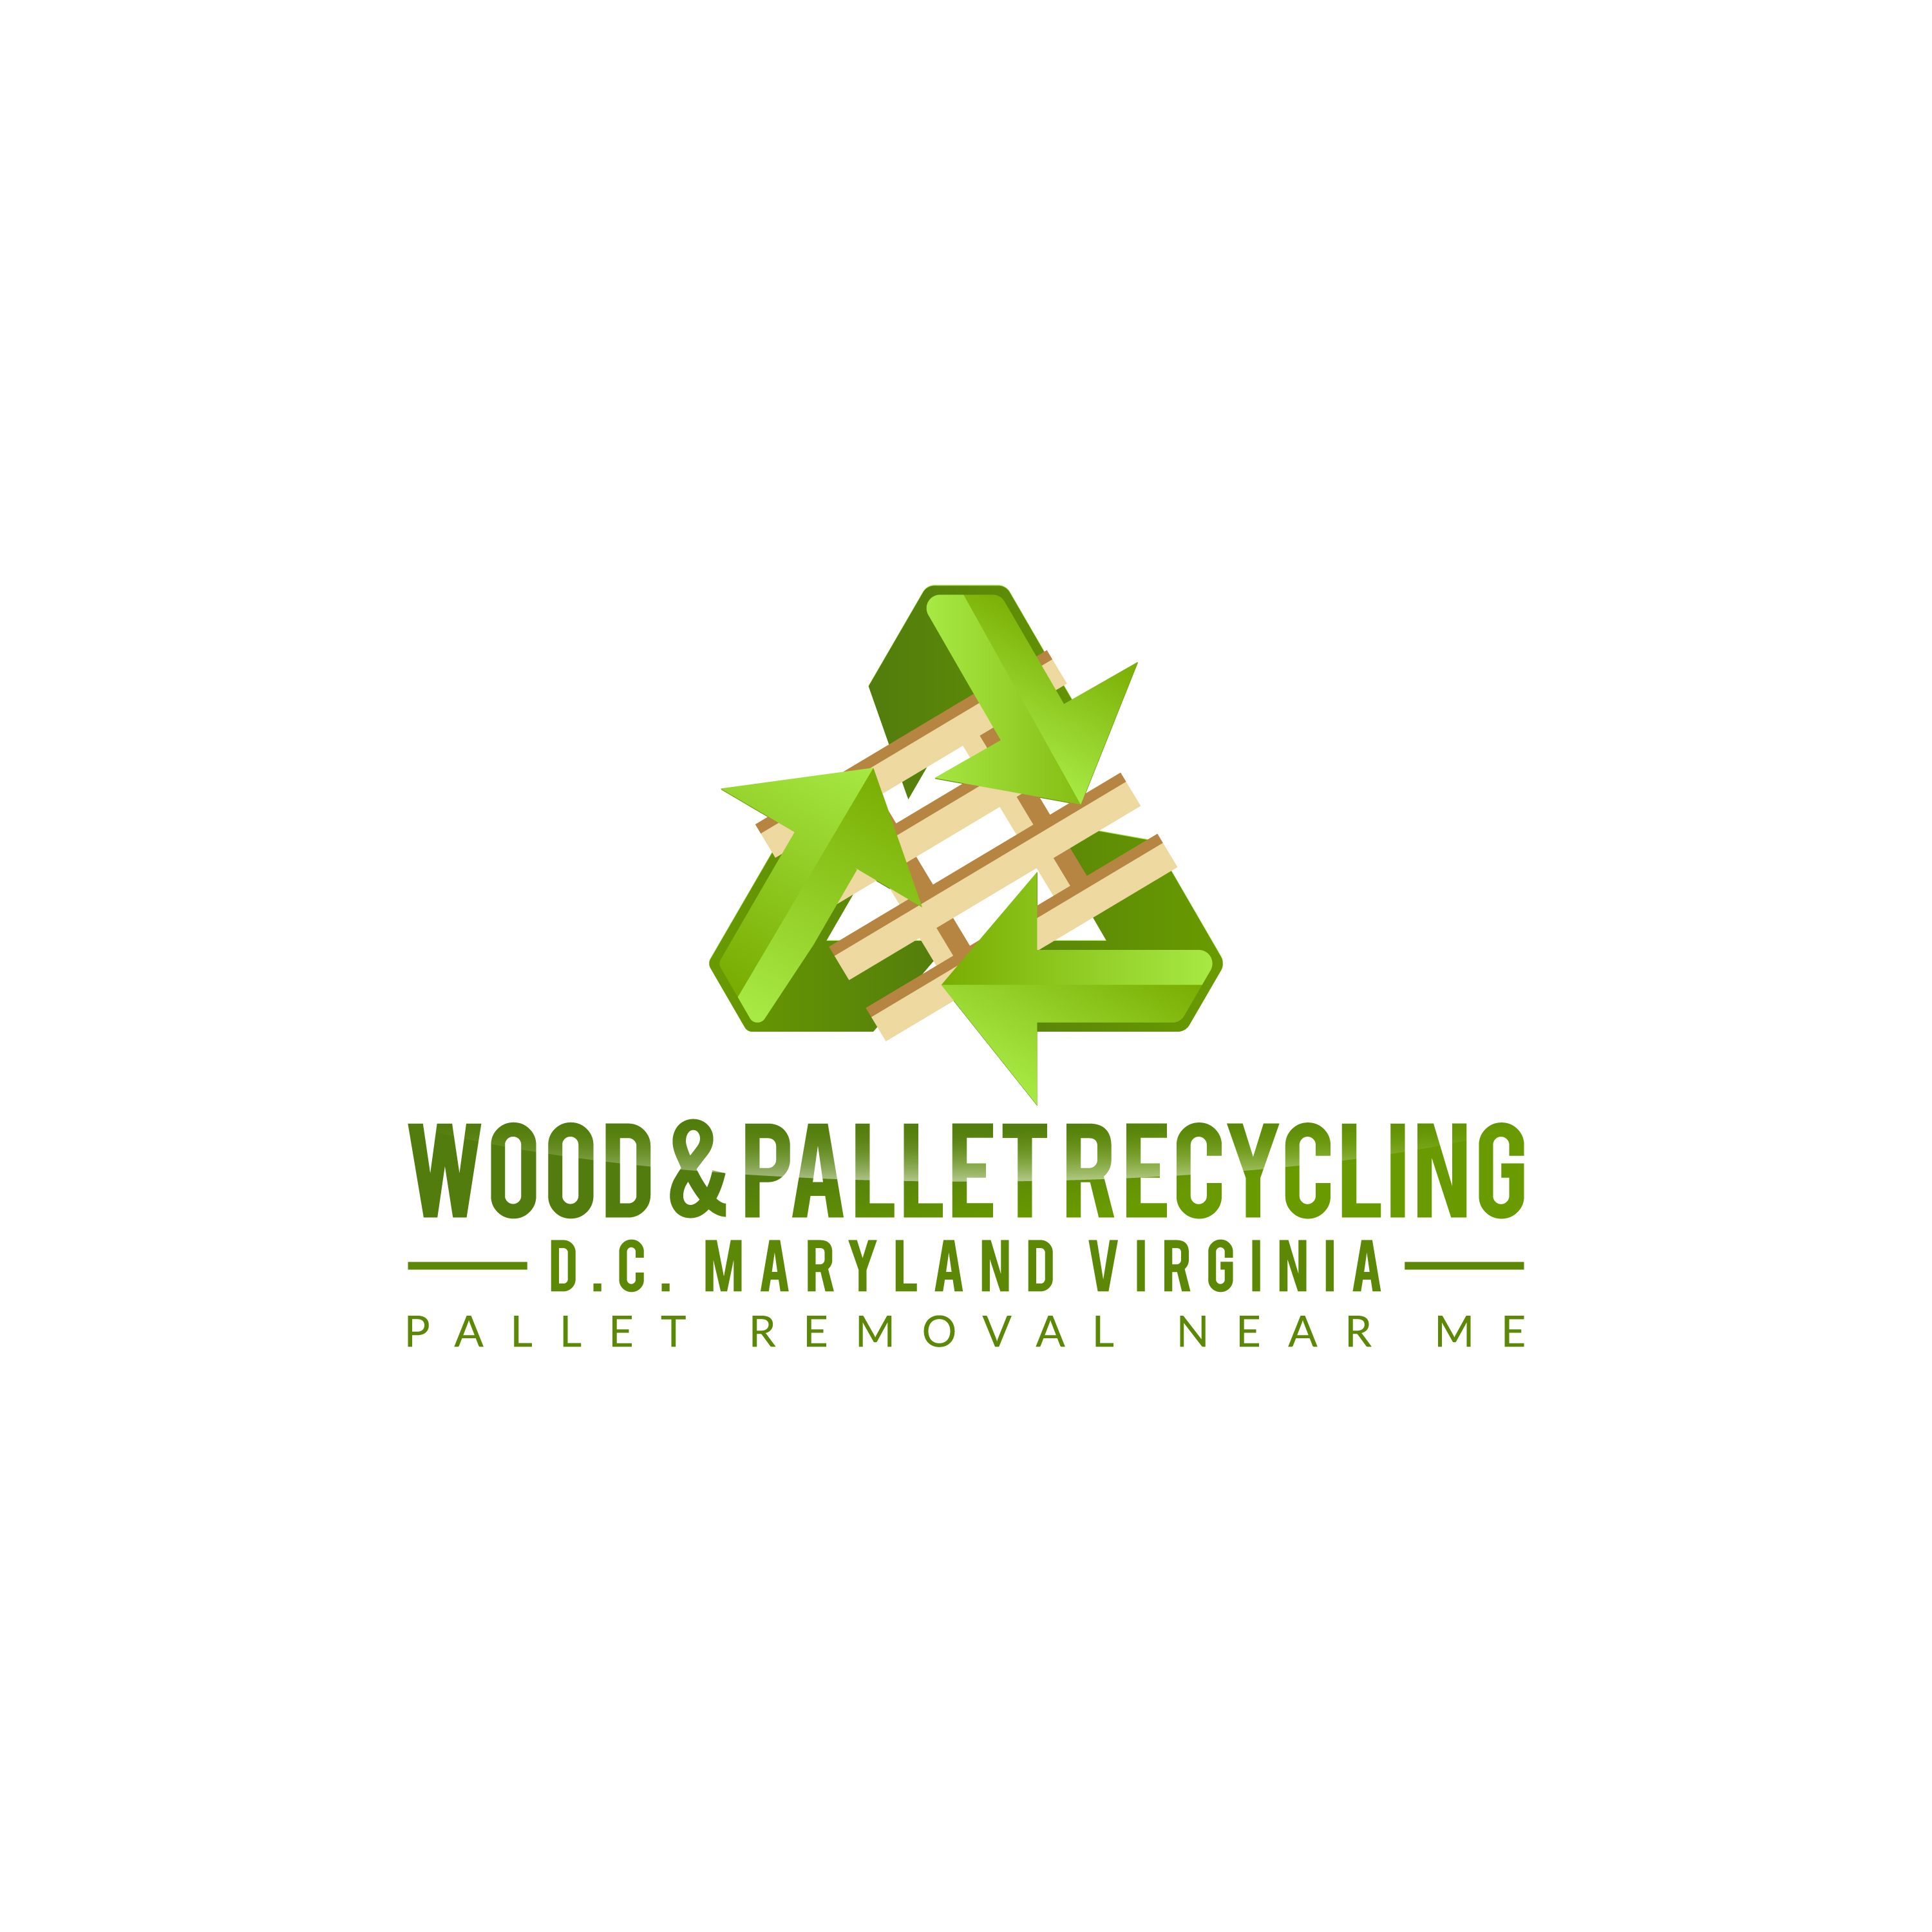 Pallet Recycling Near Me by Pallet Recycling Near Me on Guides